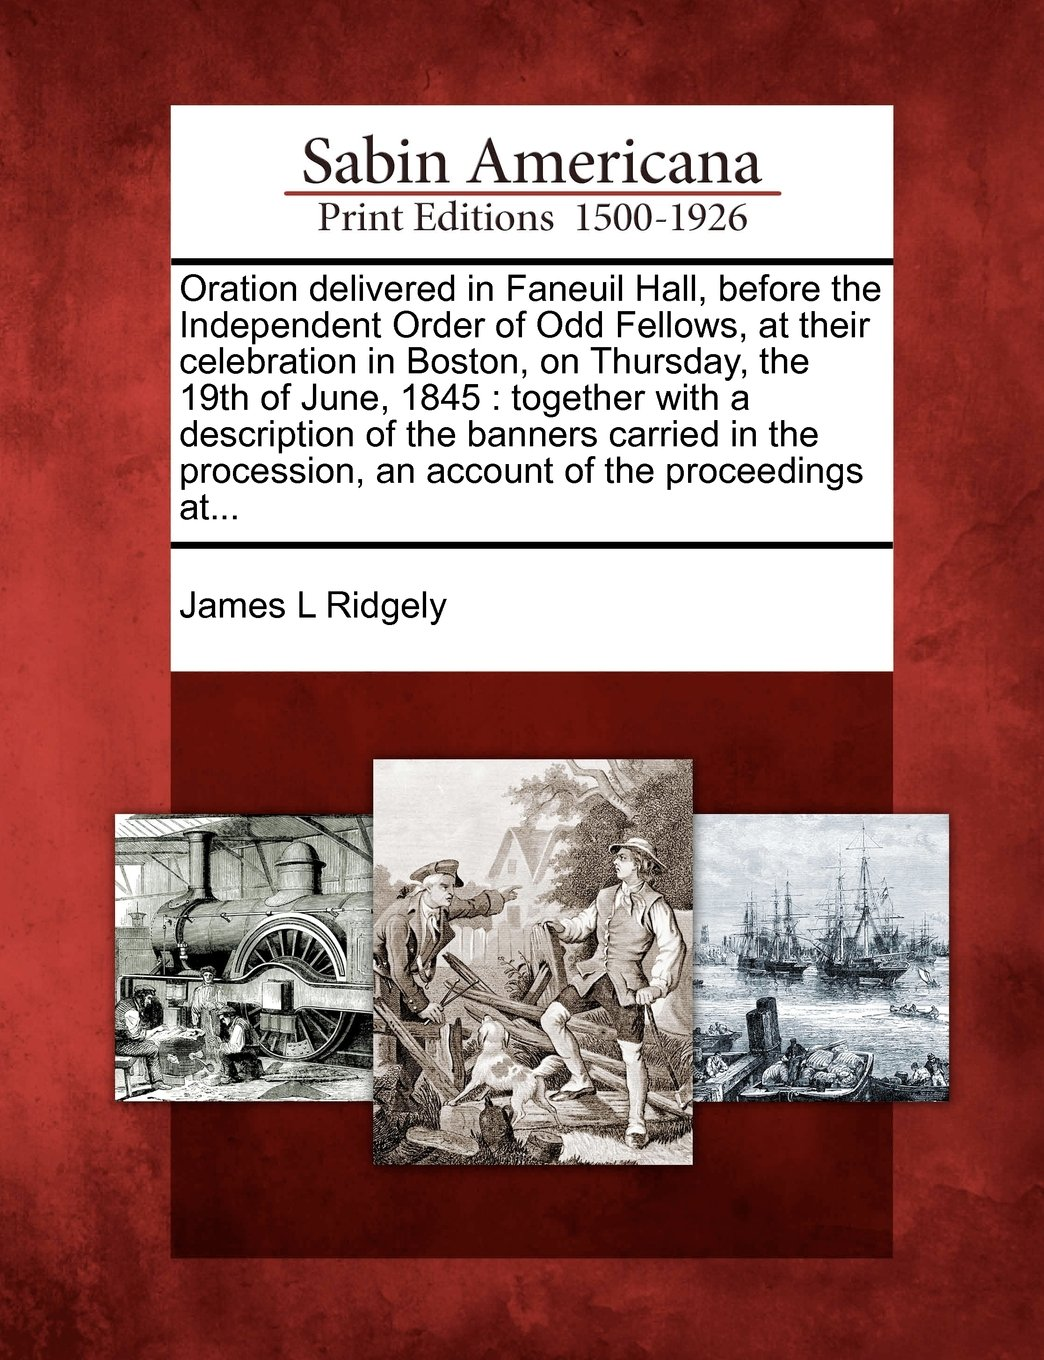 Download Oration delivered in Faneuil Hall, before the Independent Order of Odd Fellows, at their celebration in Boston, on Thursday, the 19th of June, 1845: ... an account of the proceedings at... PDF